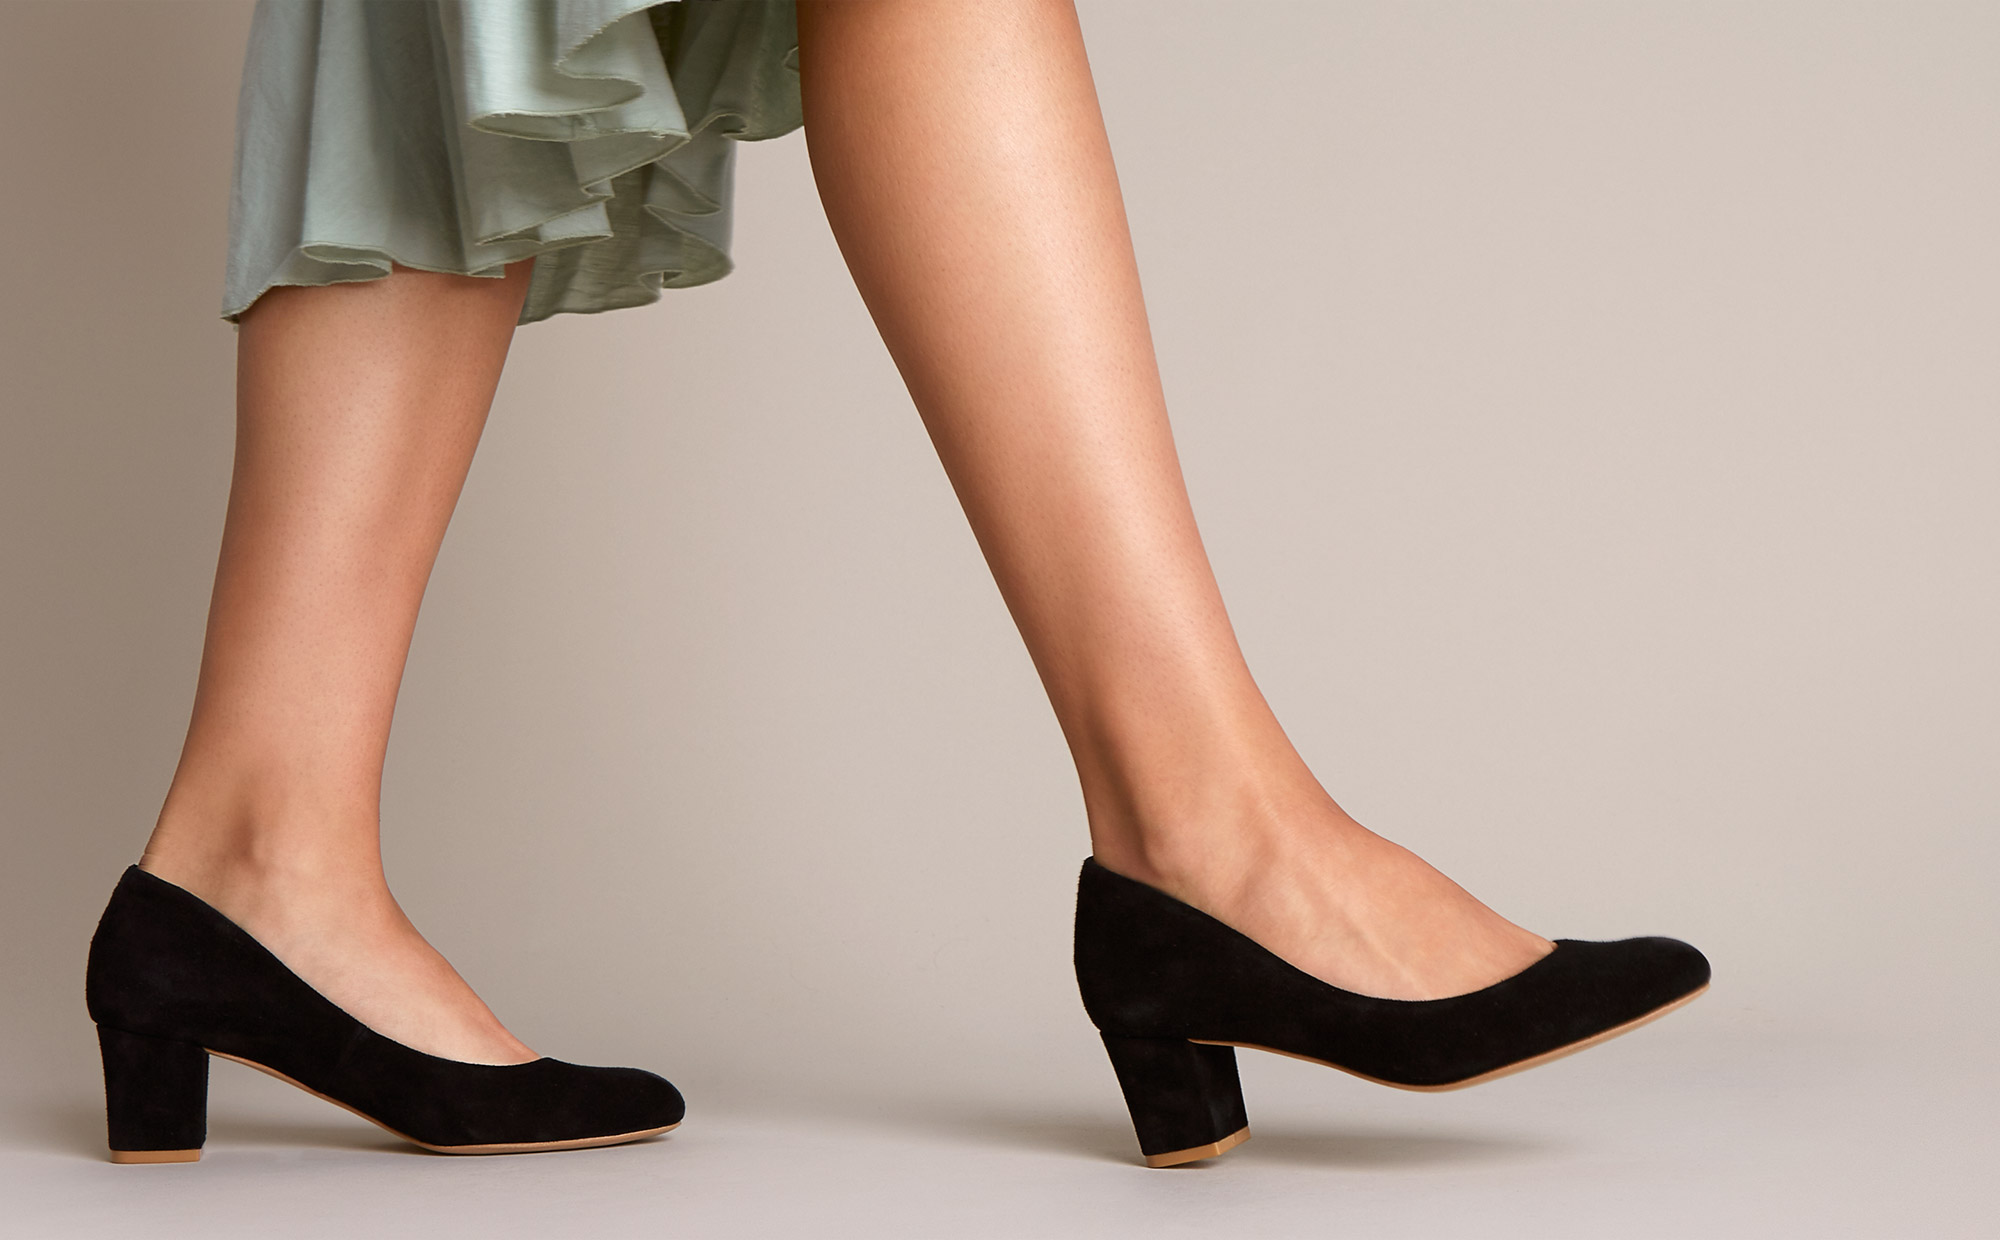 Black suede pumps to wear to the office